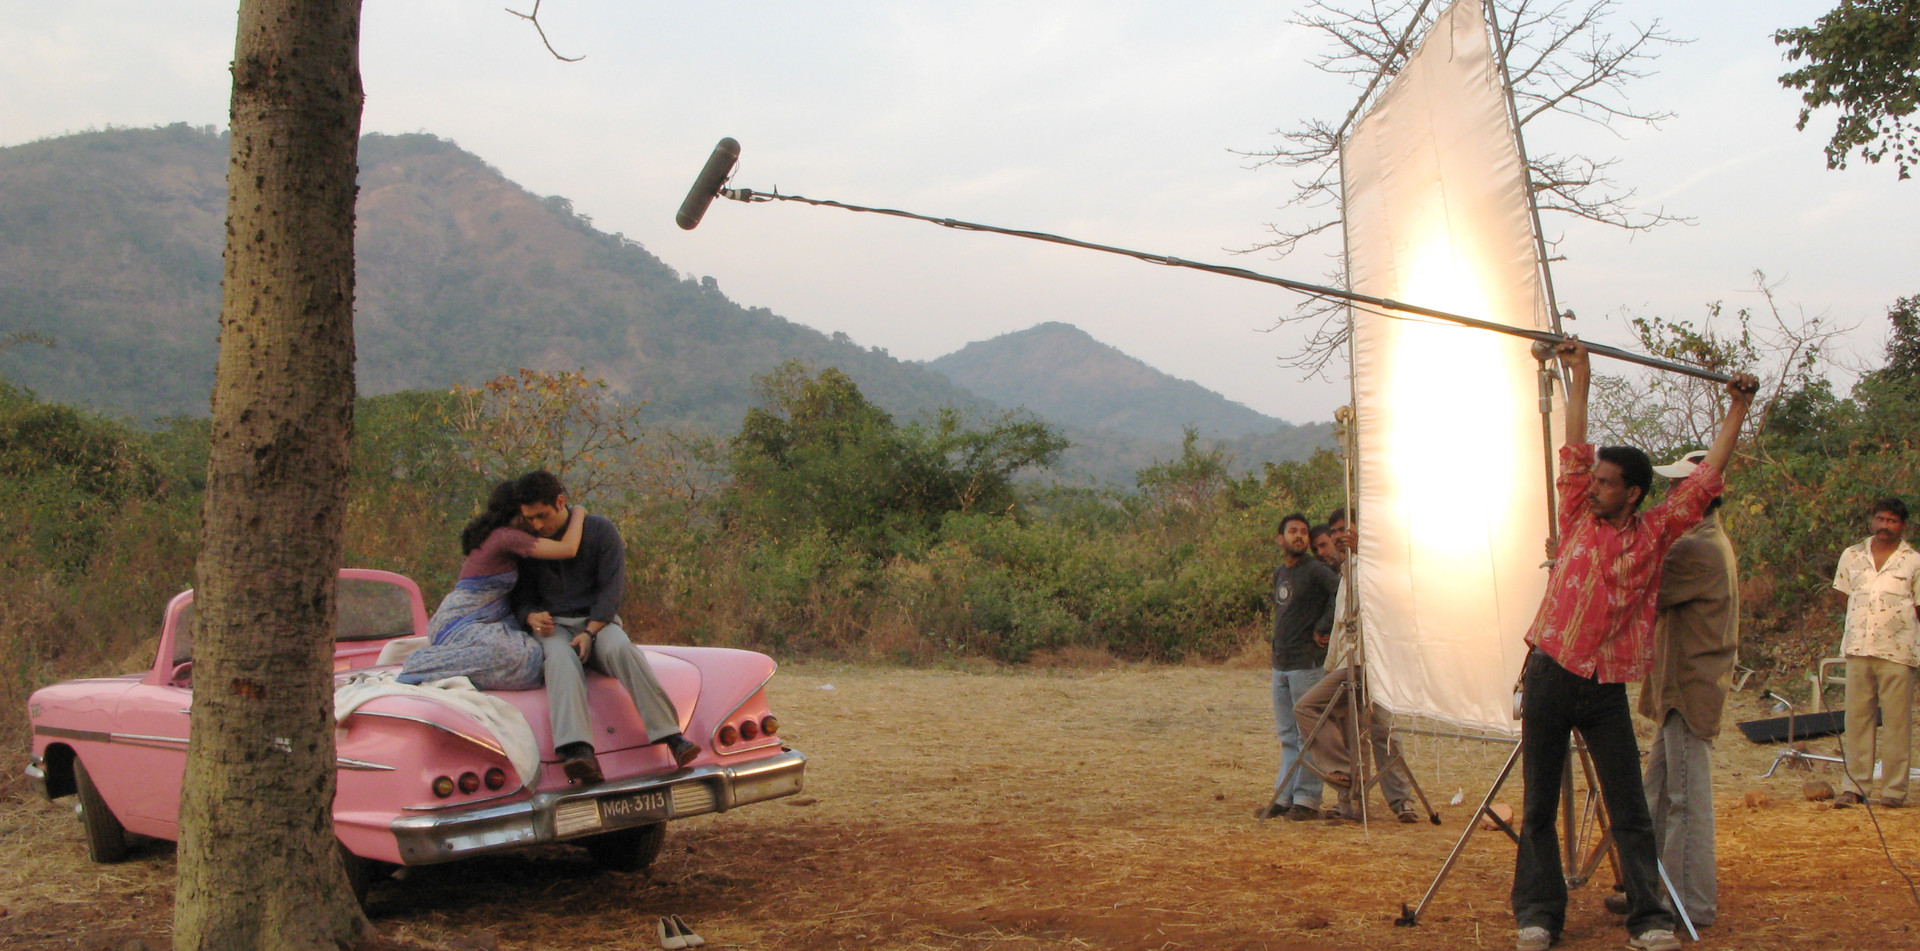 Romantic scene being shot on location at Film City in Mumbai